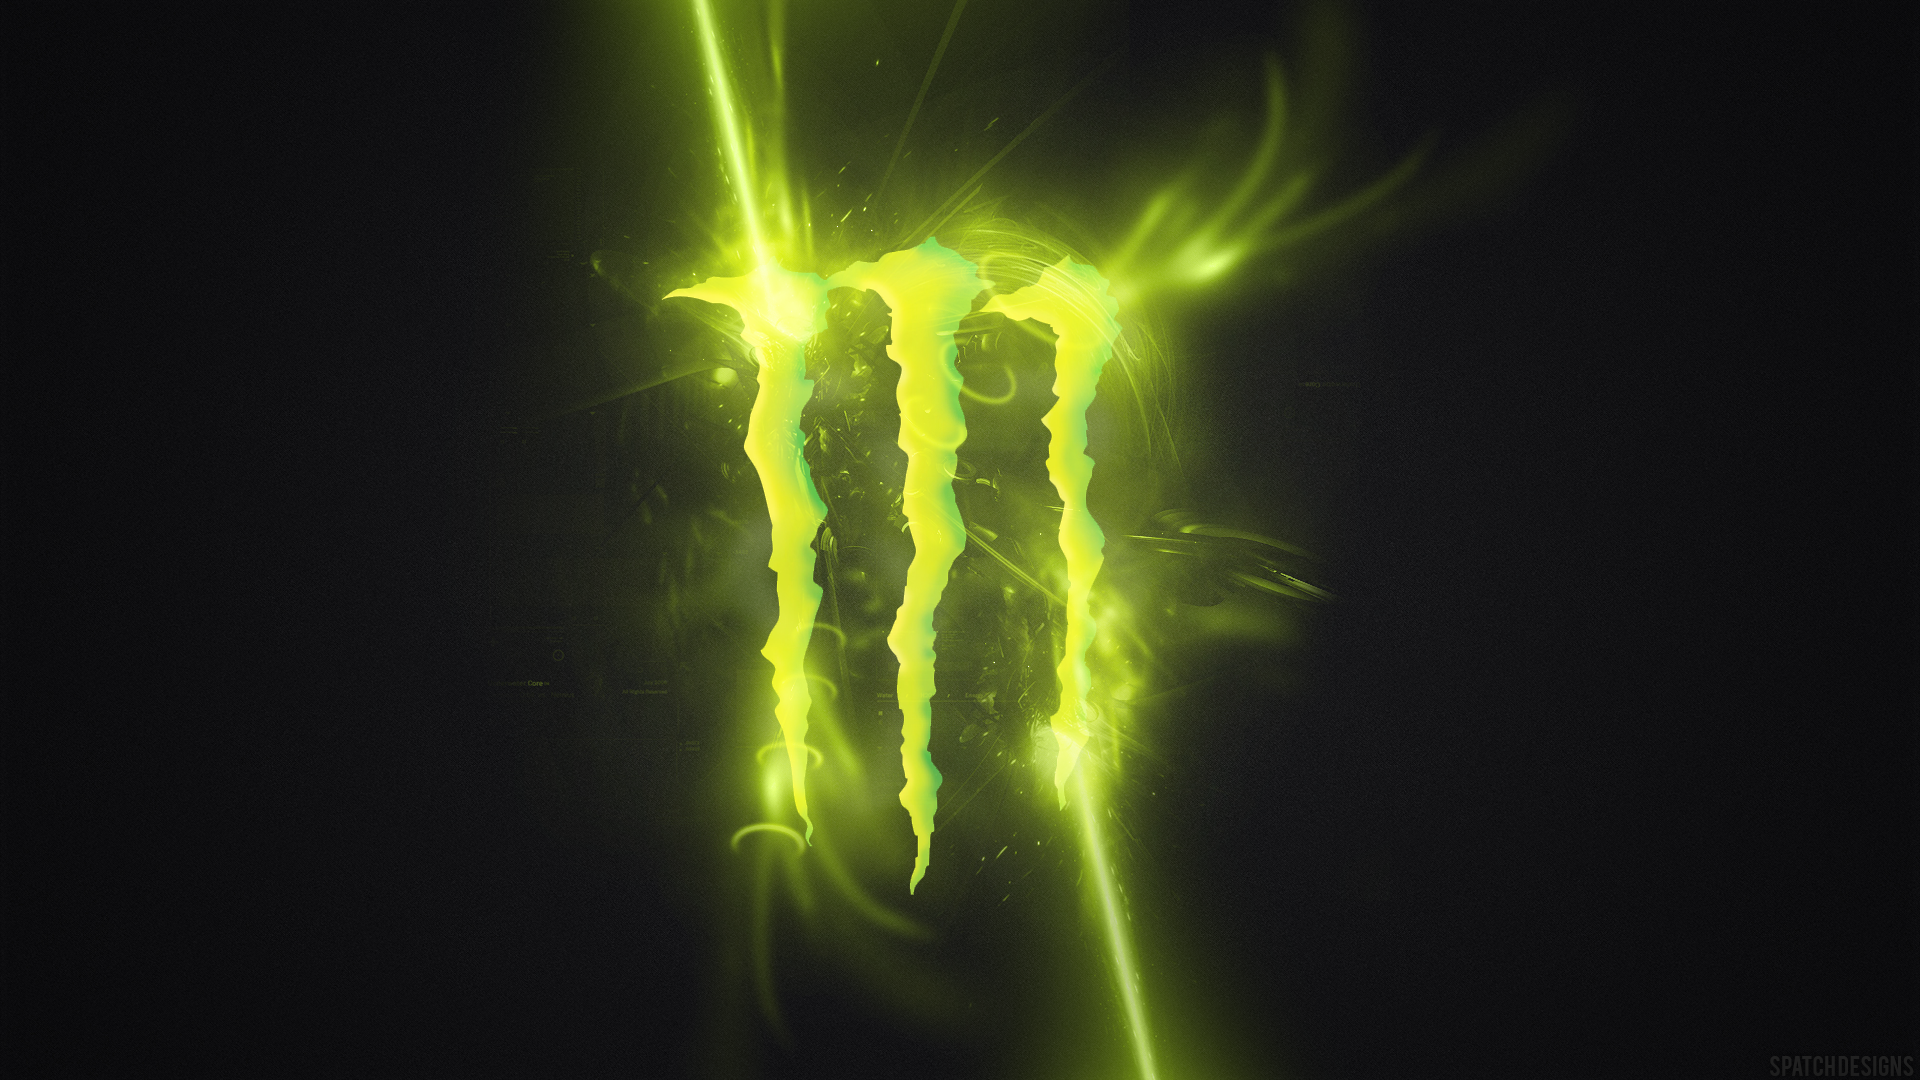 Monster Energy Drink Wallpaper 1 Cool Hd Wallpaper Wallpaper 1920x1080